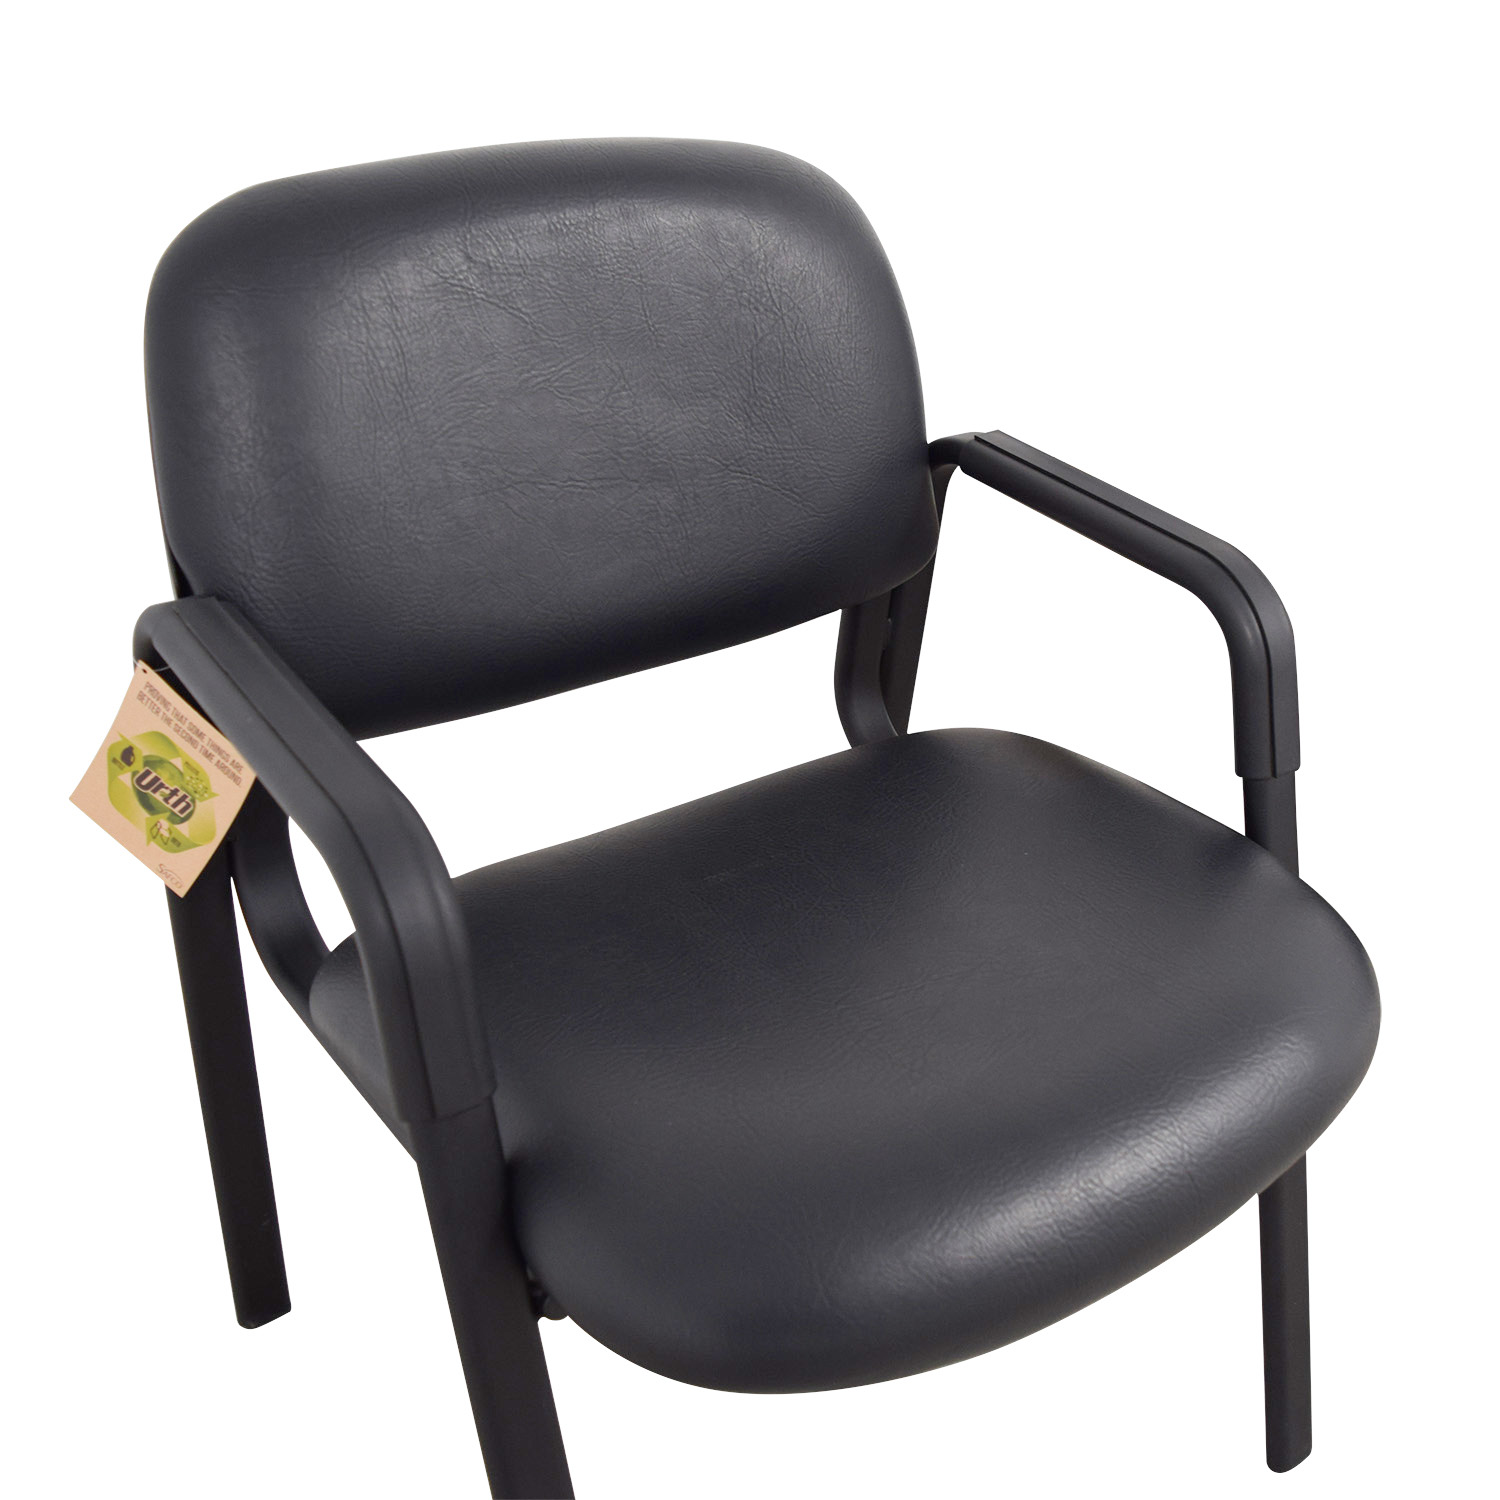 shop Urth Urth Cava Black Leather Chairs online